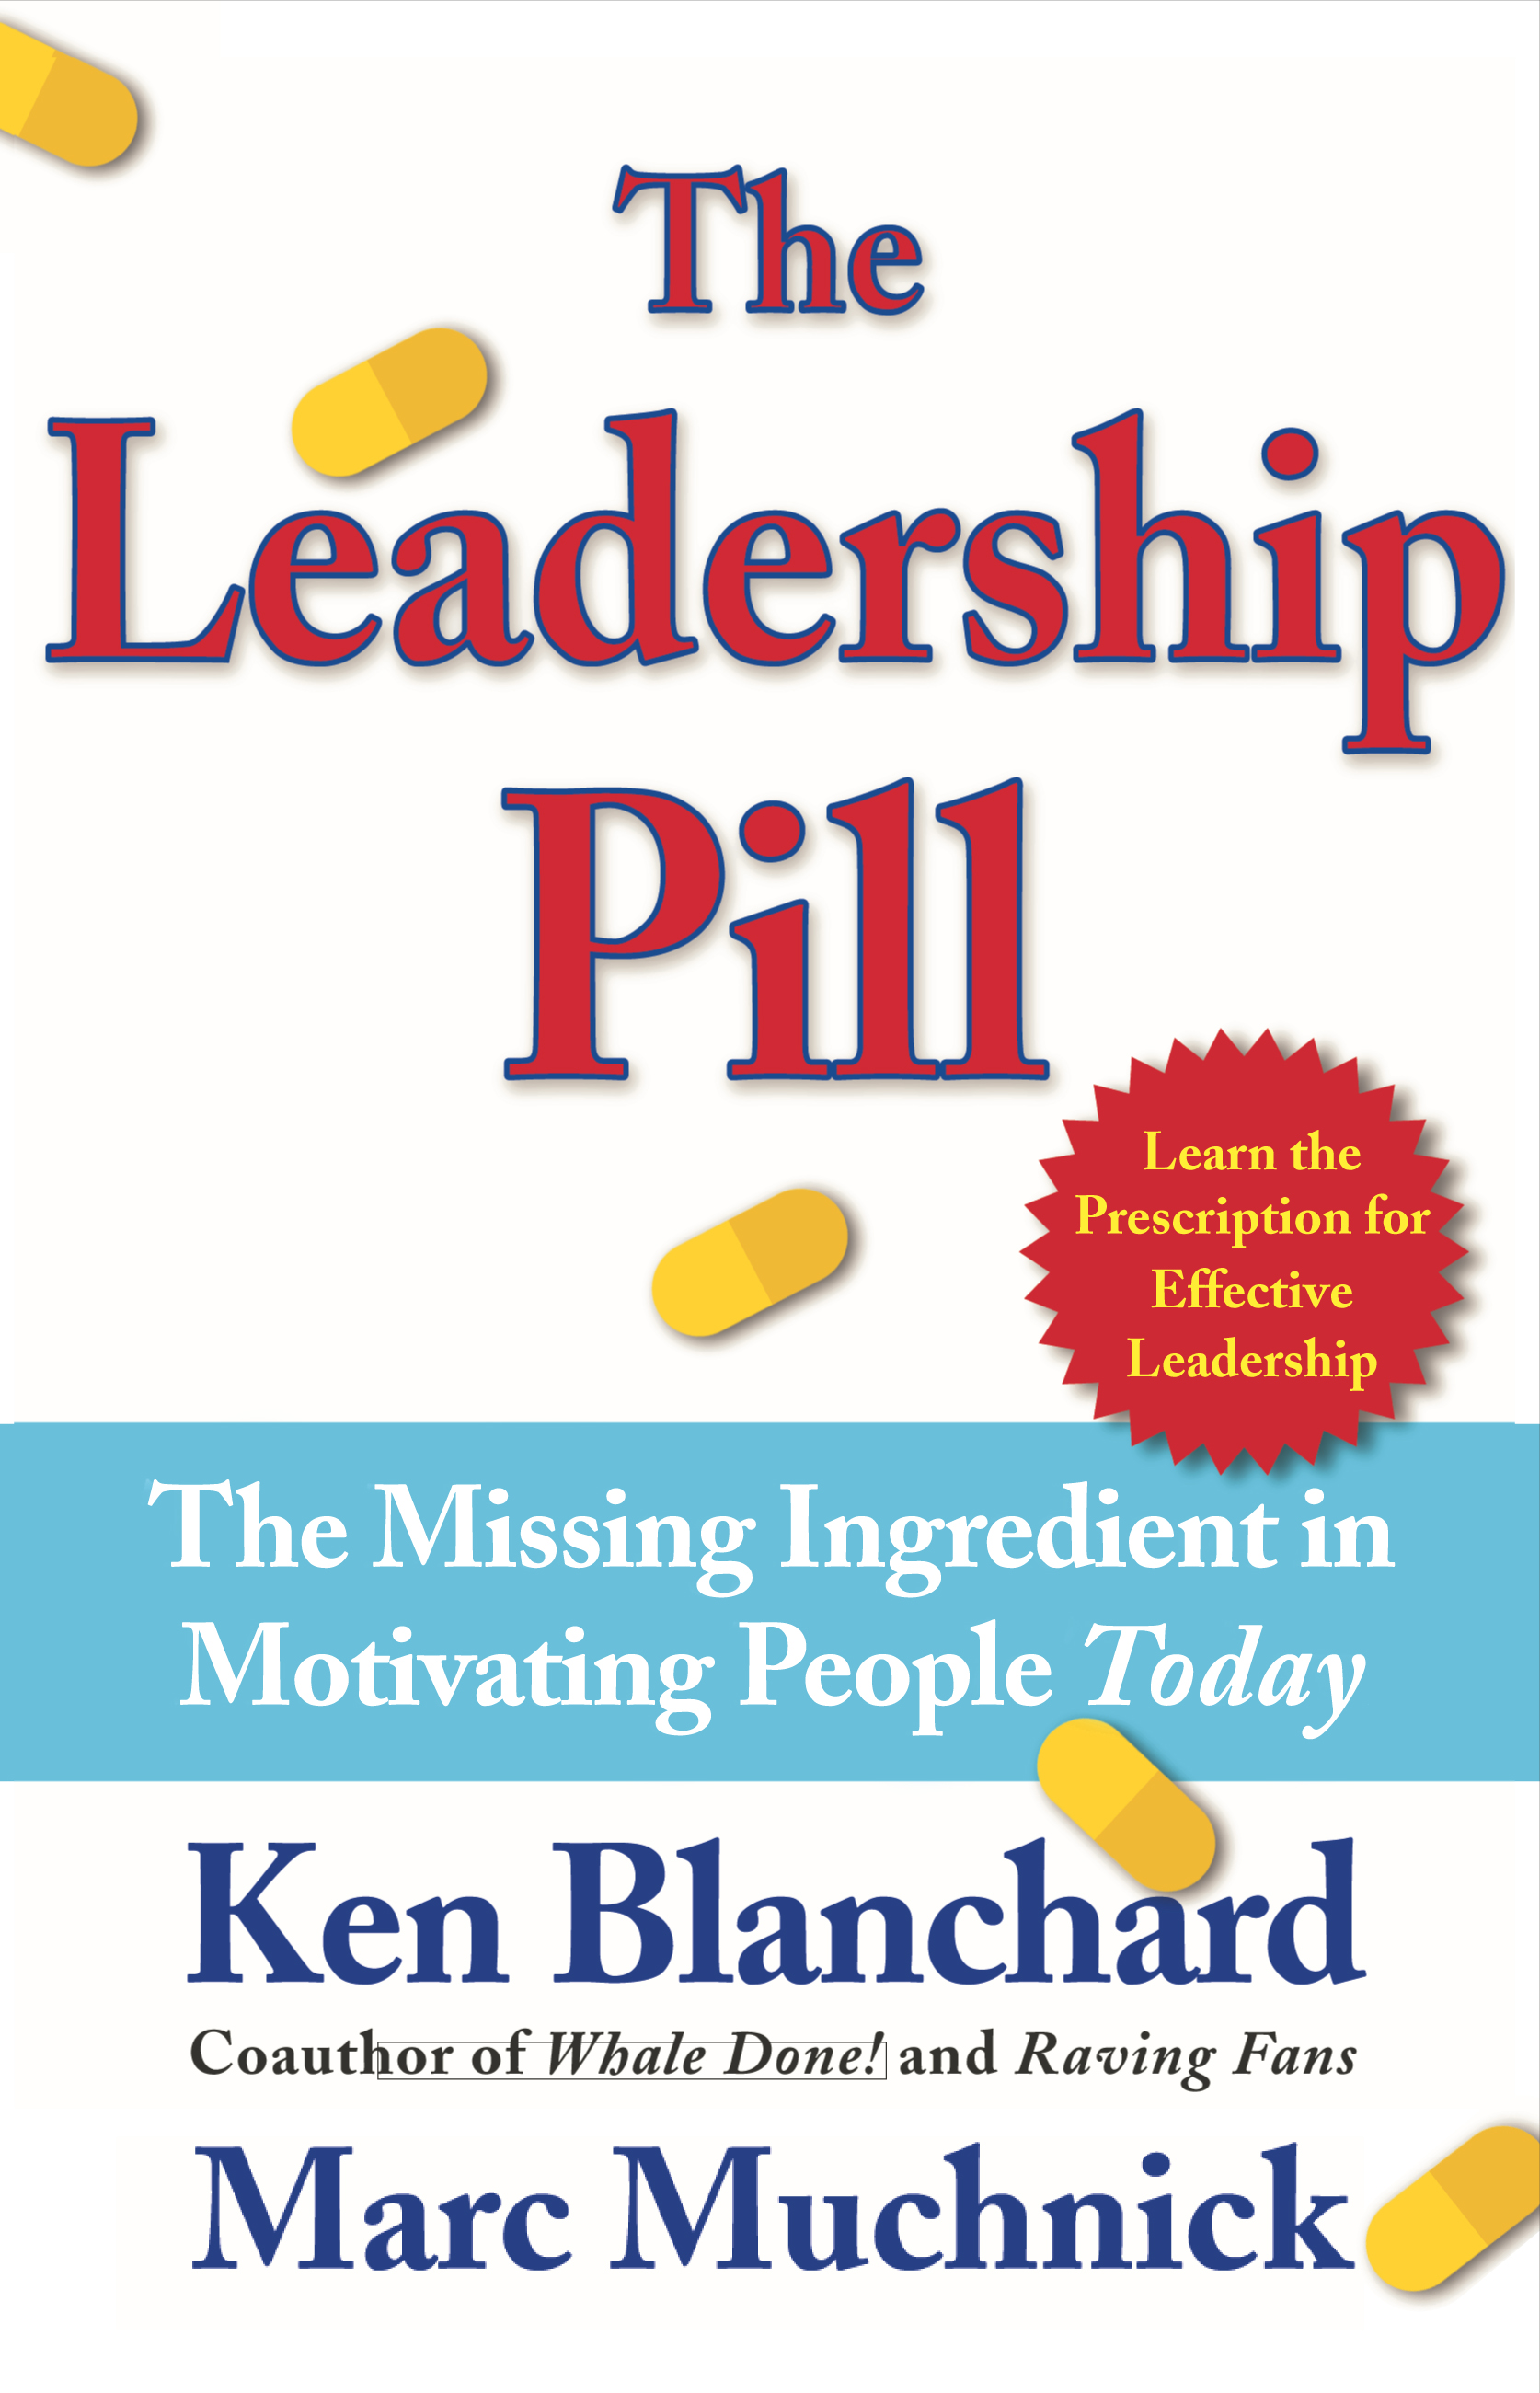 The leadership pill book by kenneth blanchard marc muchnick cvr9780743250016 9780743250016 hr the leadership pill fandeluxe Image collections